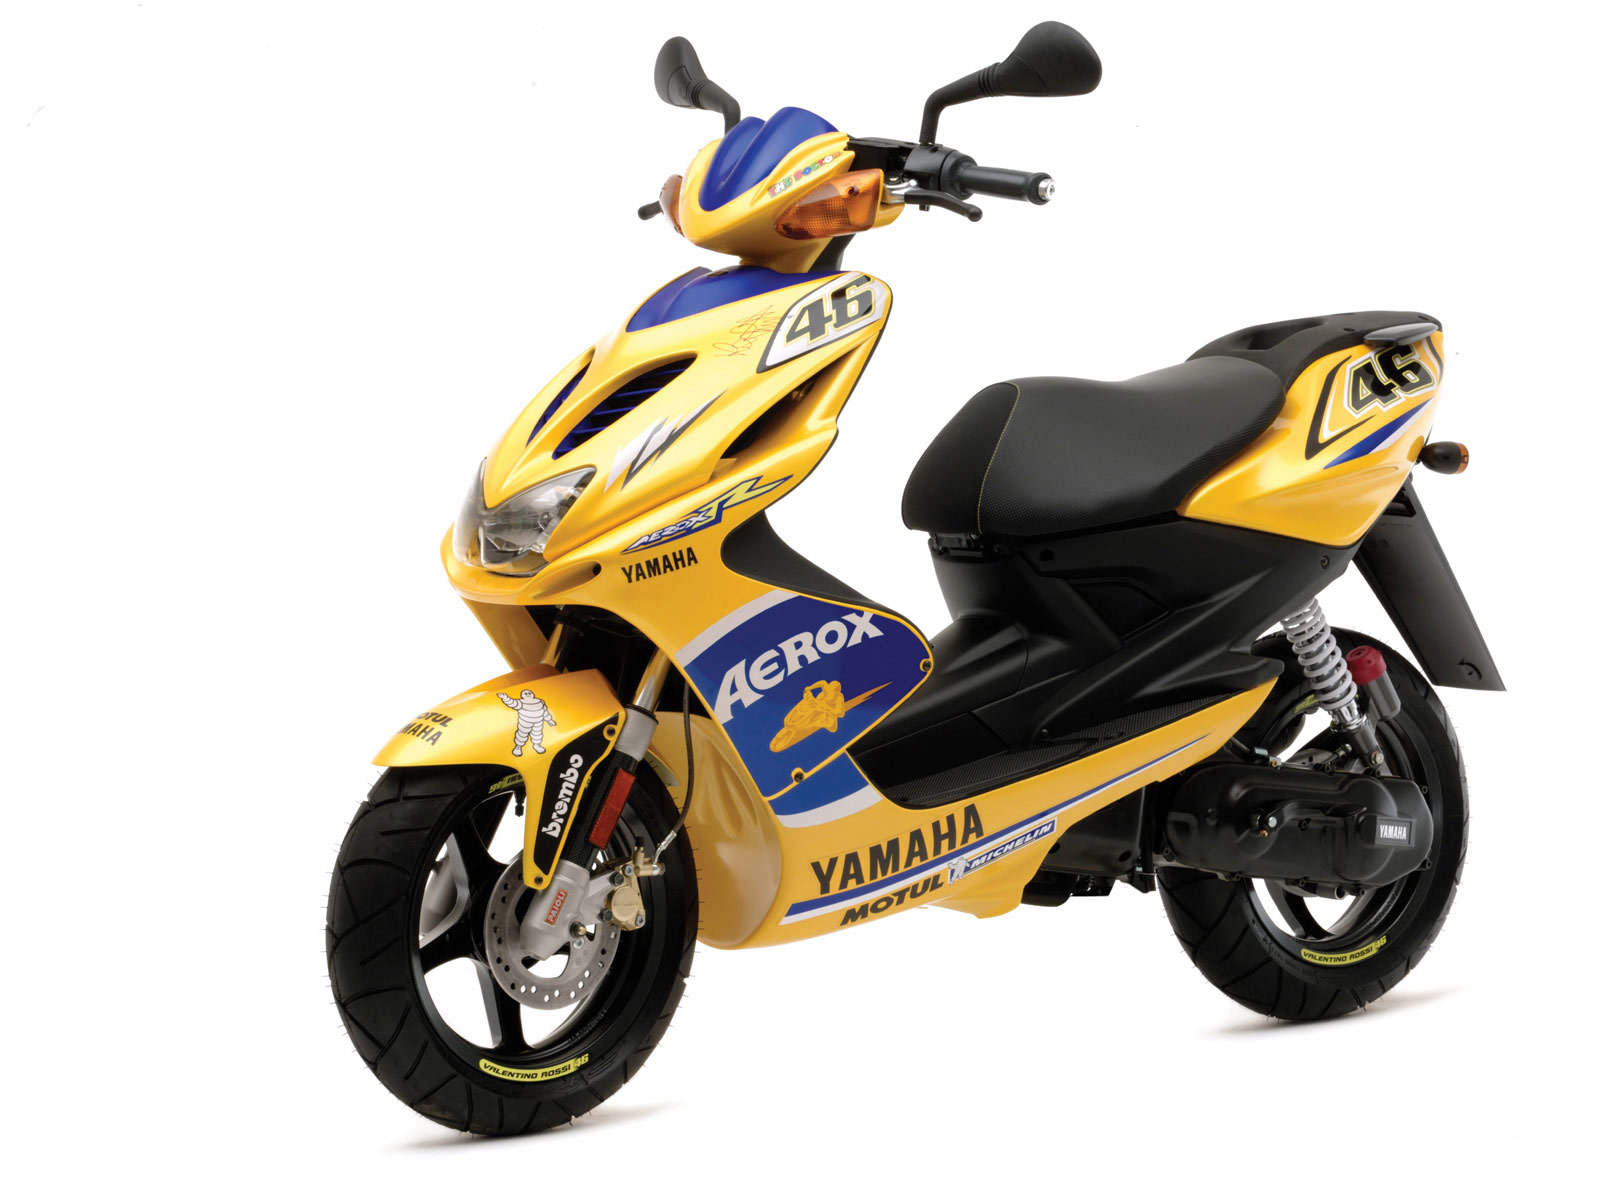 YAMAHA scooter pictures. 2008 Aerox R Race Replica